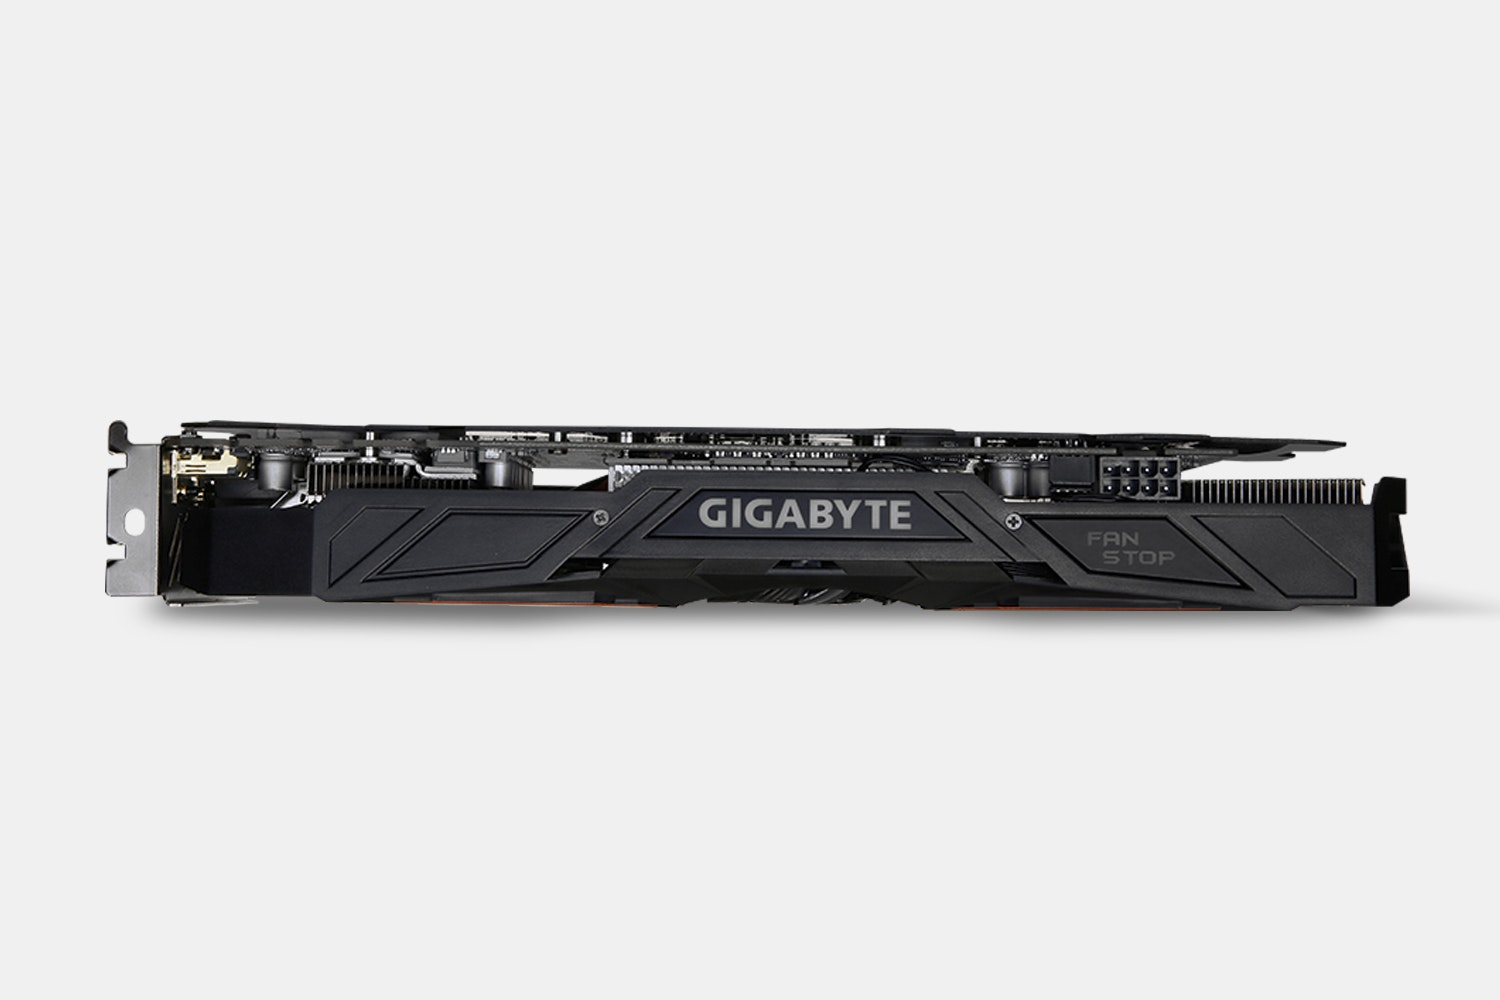 Gigabyte GeForce GTX 1070|1080 G1 Gaming 8G